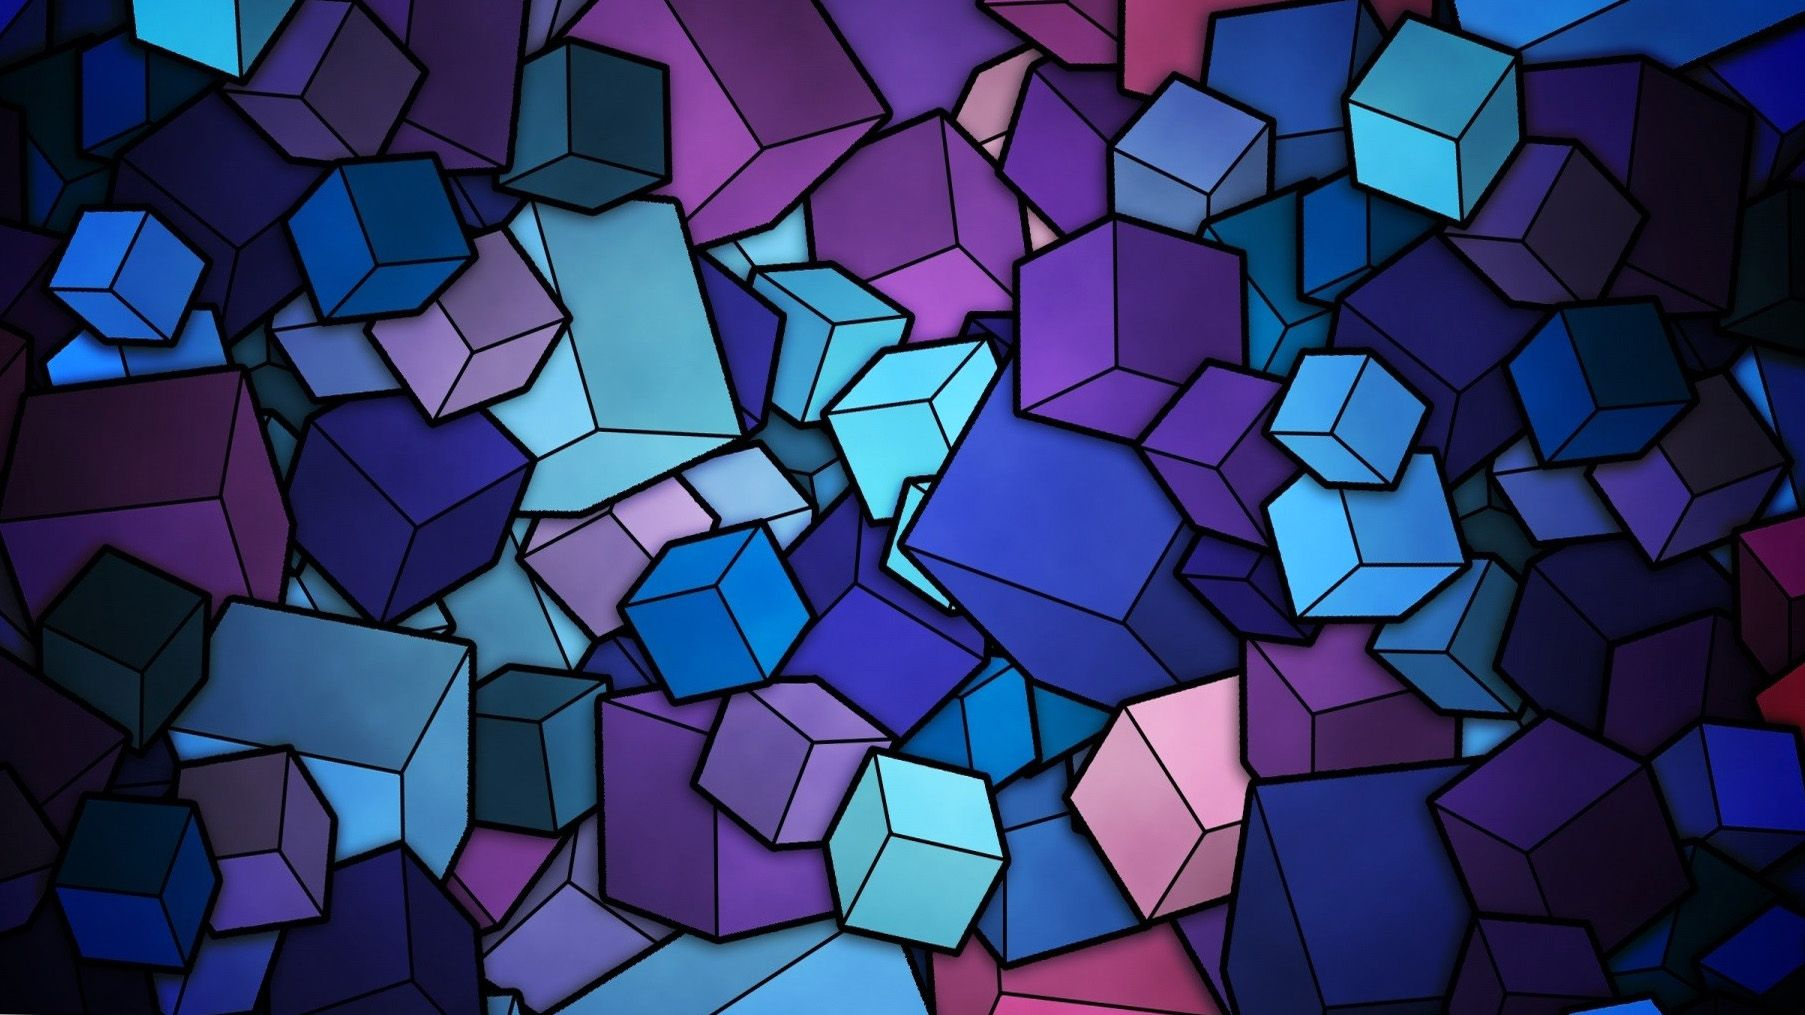 Full Hd Abstract Wallpaper For Laptop